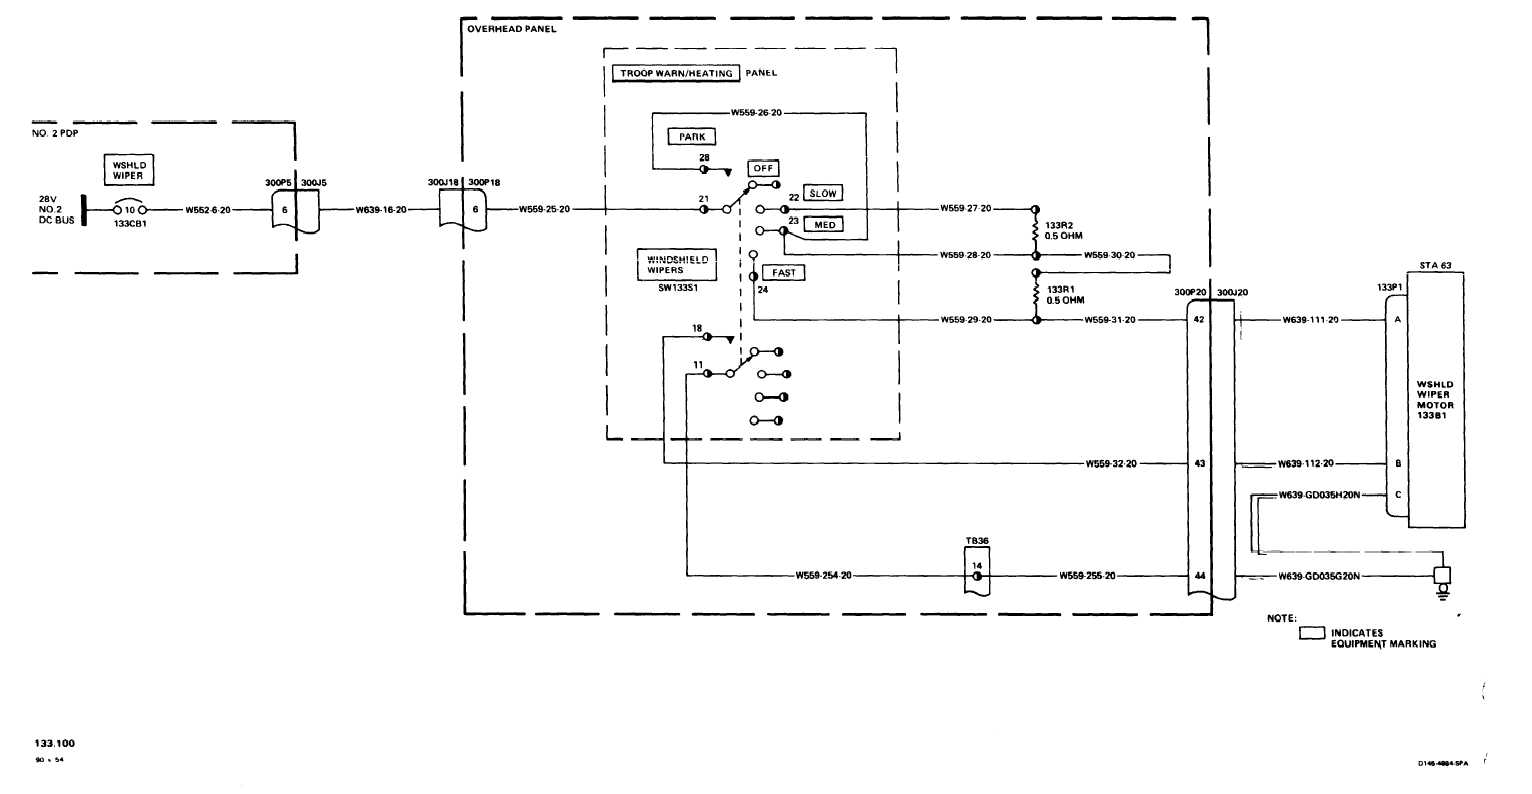 TM 55 1520 240 T 3_590_1 wiper wiring diagram f100 wiper motor wiring diagram \u2022 wiring 1999 ford explorer rear wiper wiring diagram at arjmand.co